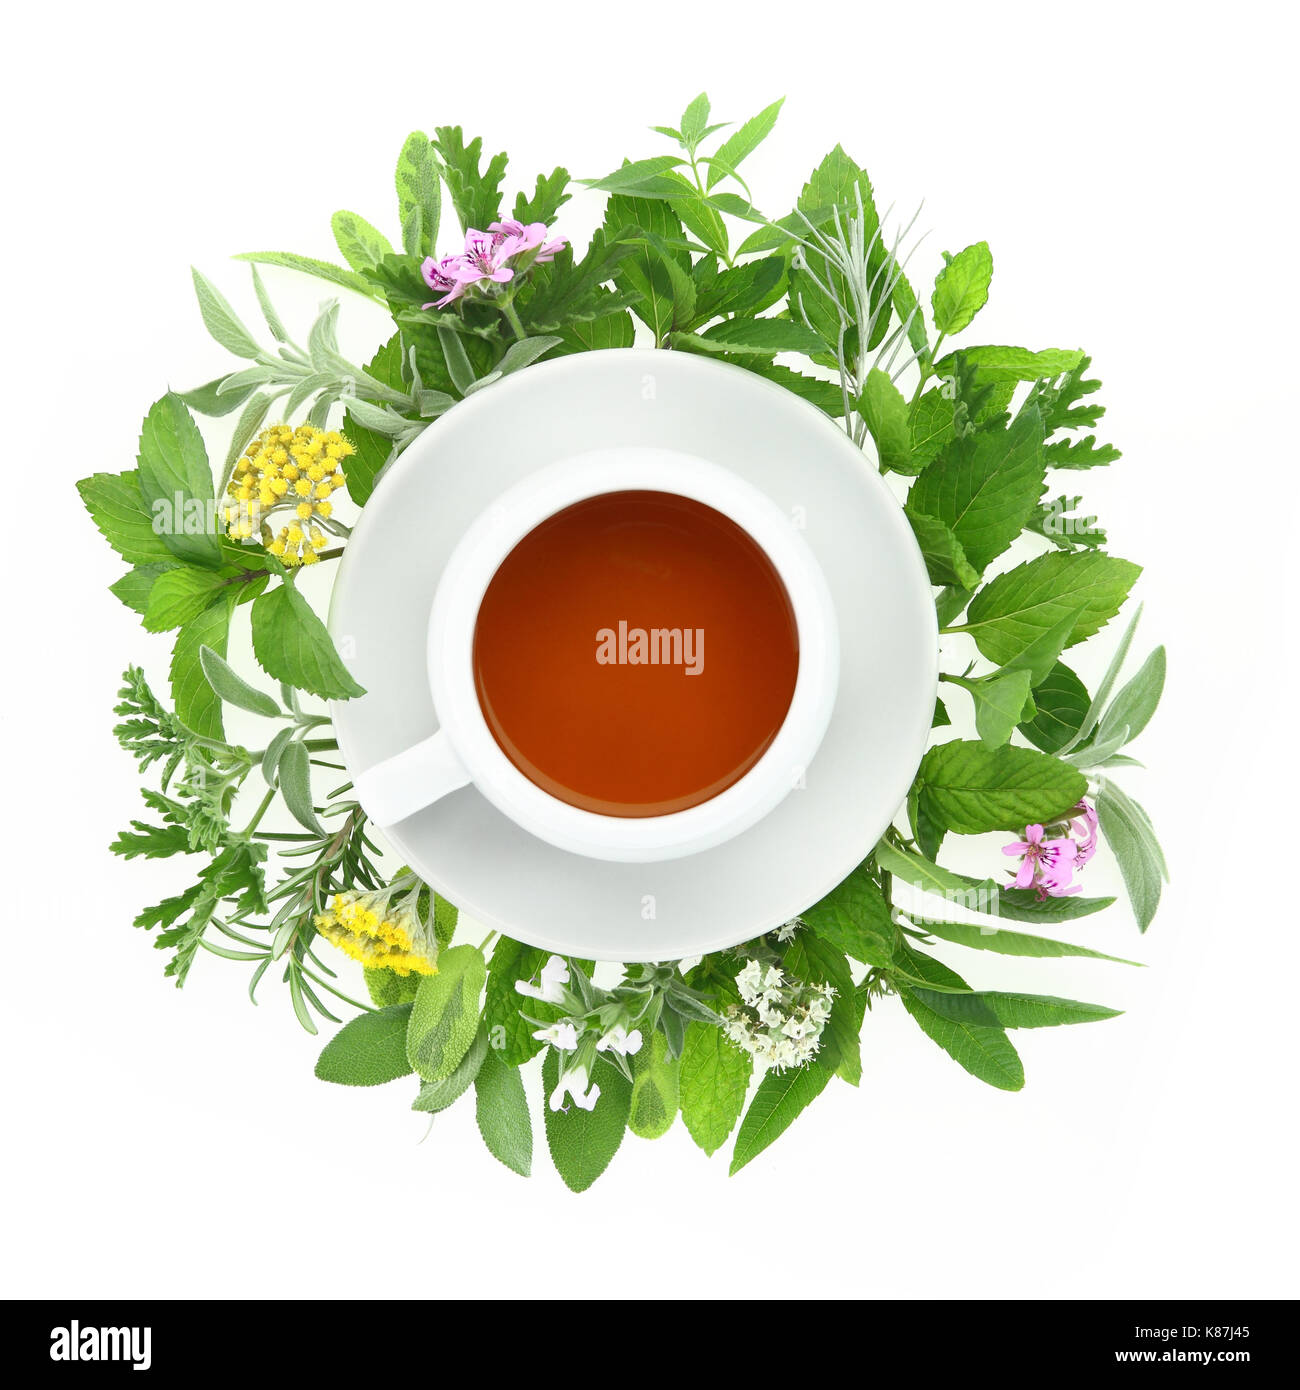 Cup of tea with fresh herbs and spices around it - Stock Image